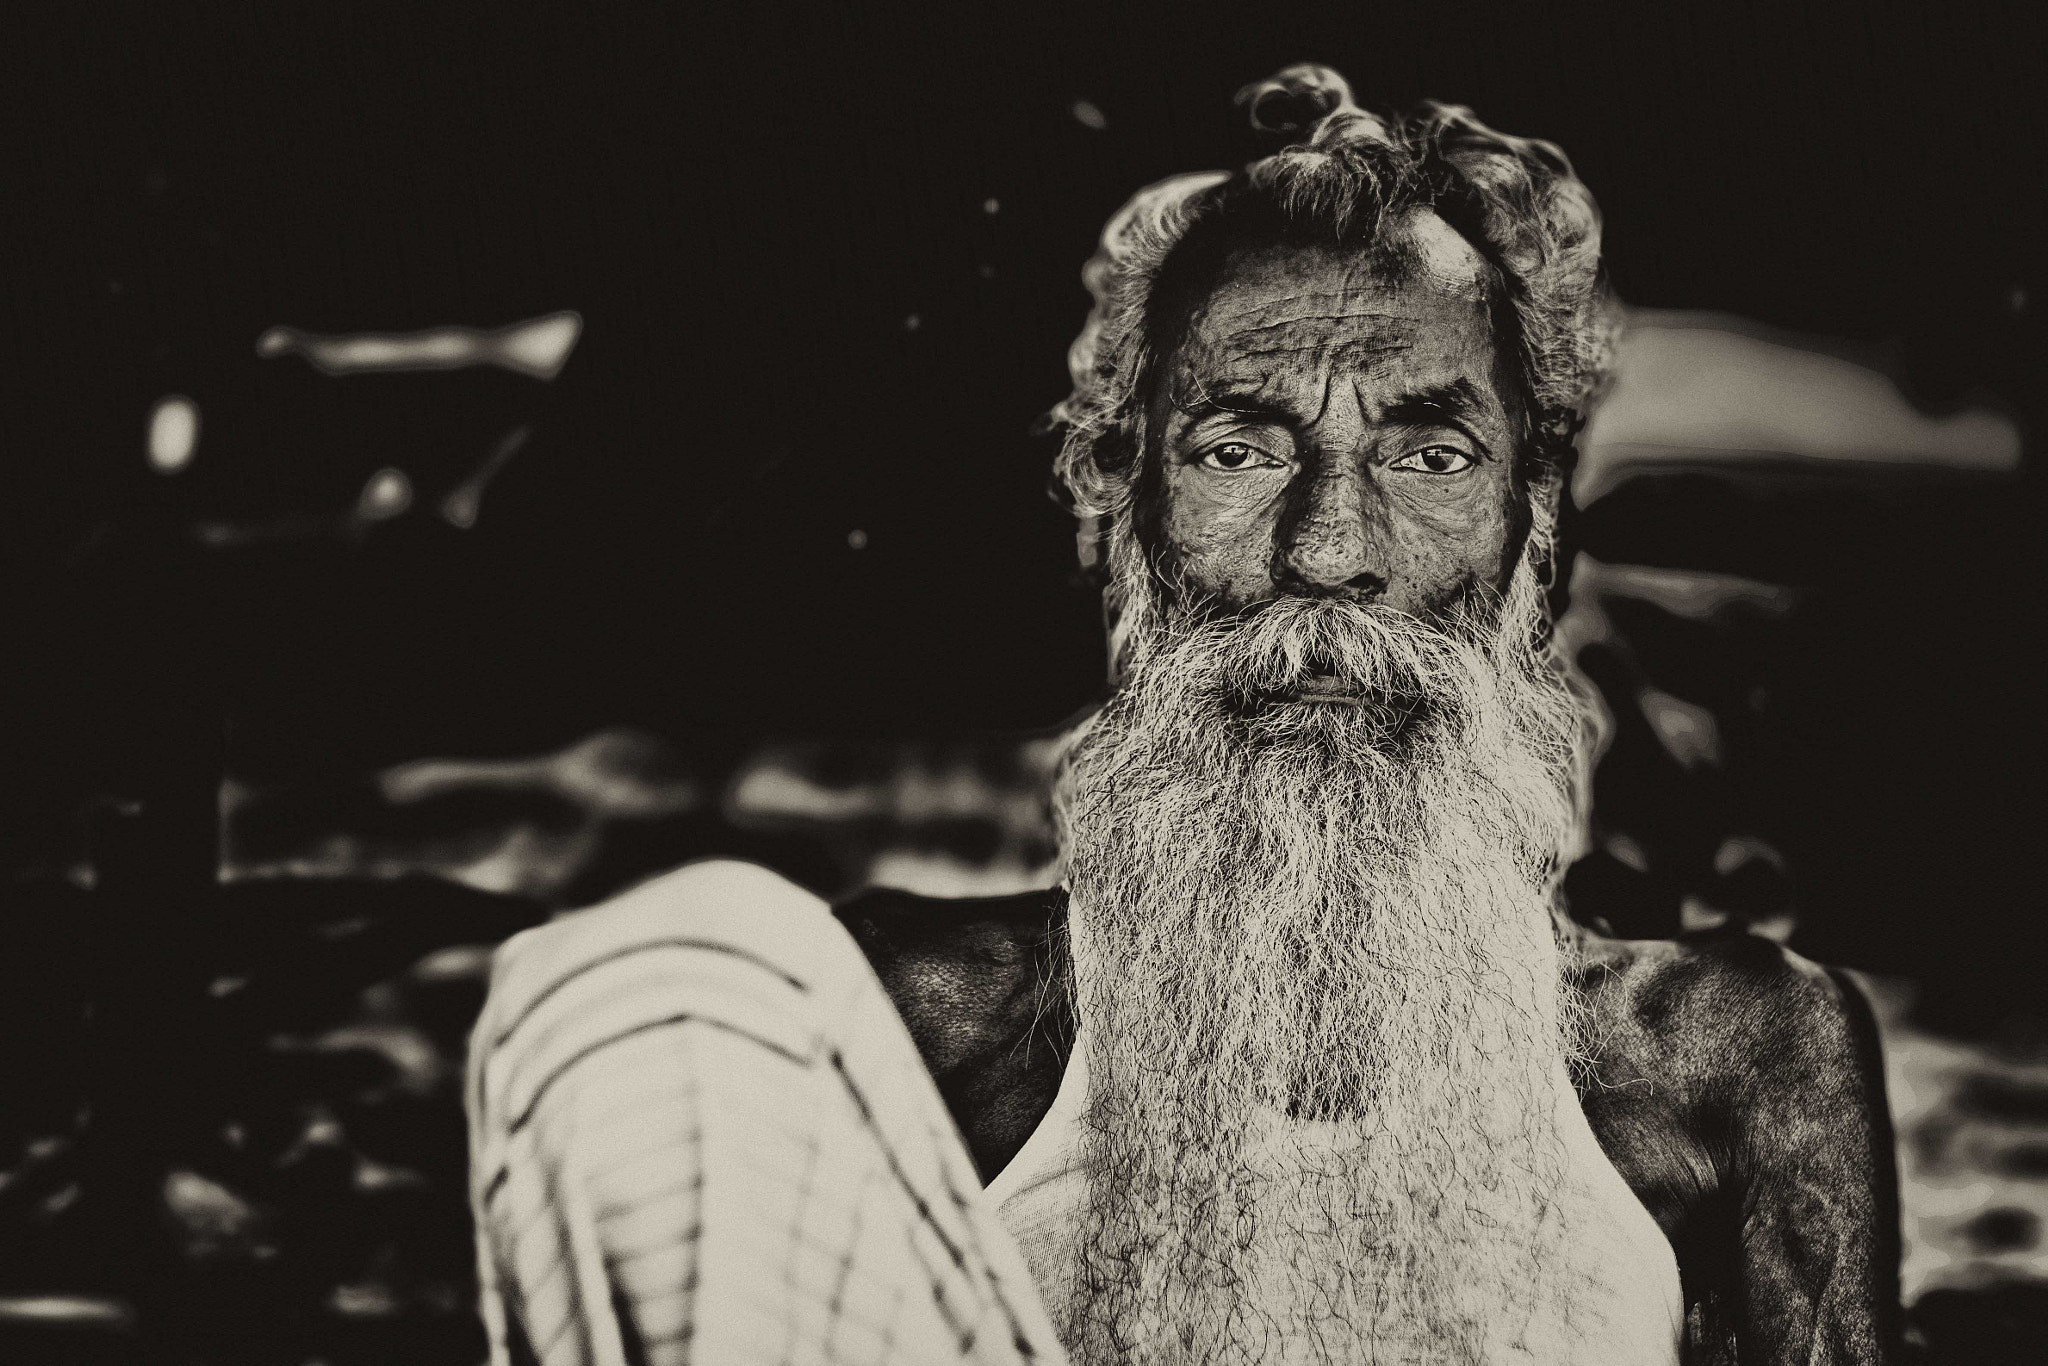 Photograph potrait-I by Ananta Chowdhury on 500px